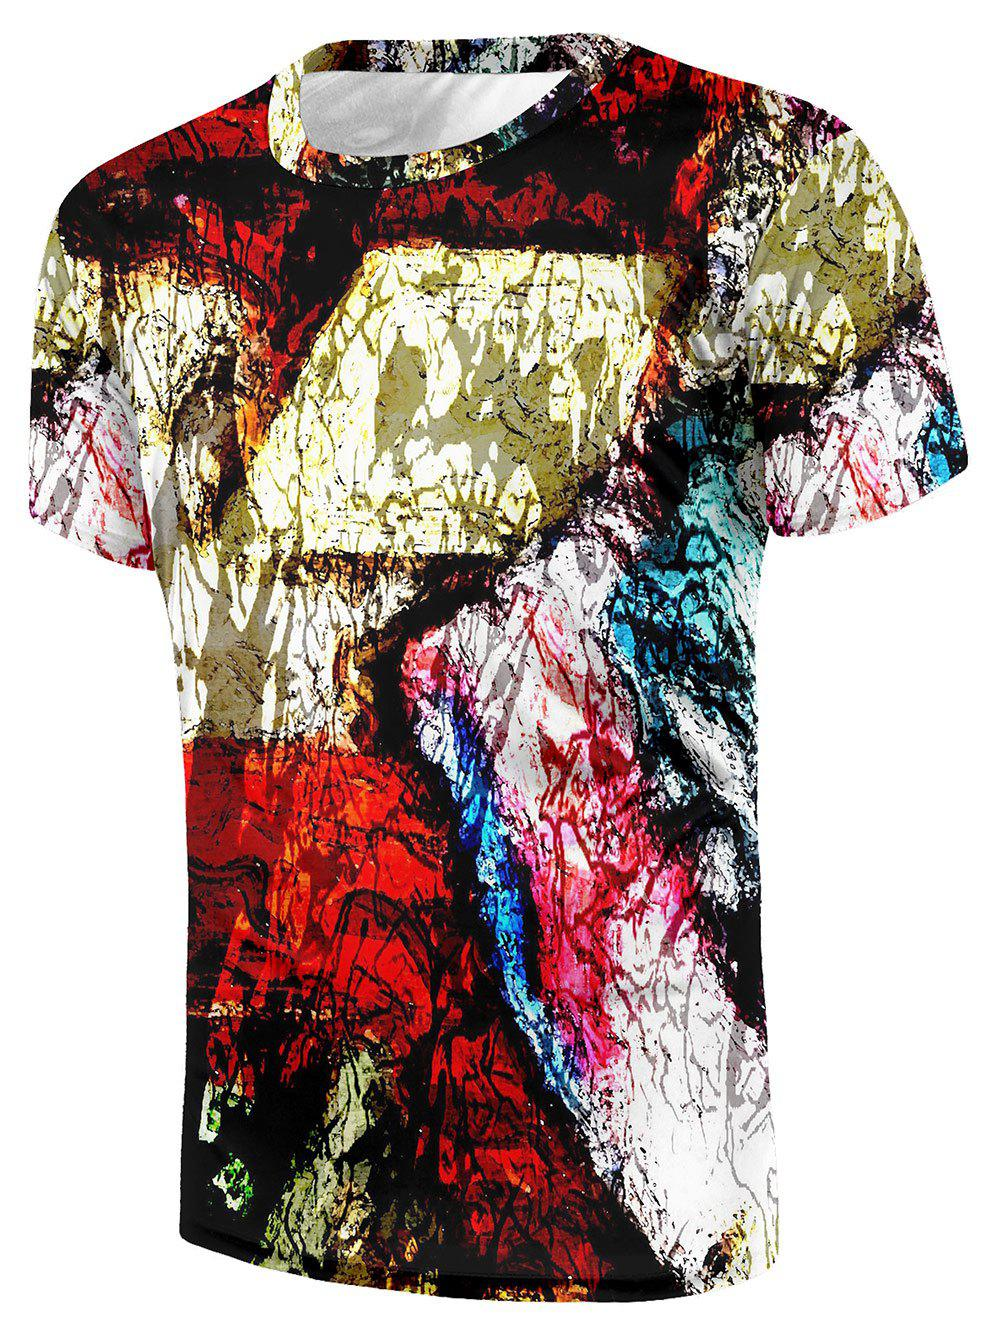 Crew Neck Dye Scrawl Print T-shirt - multicolor XL